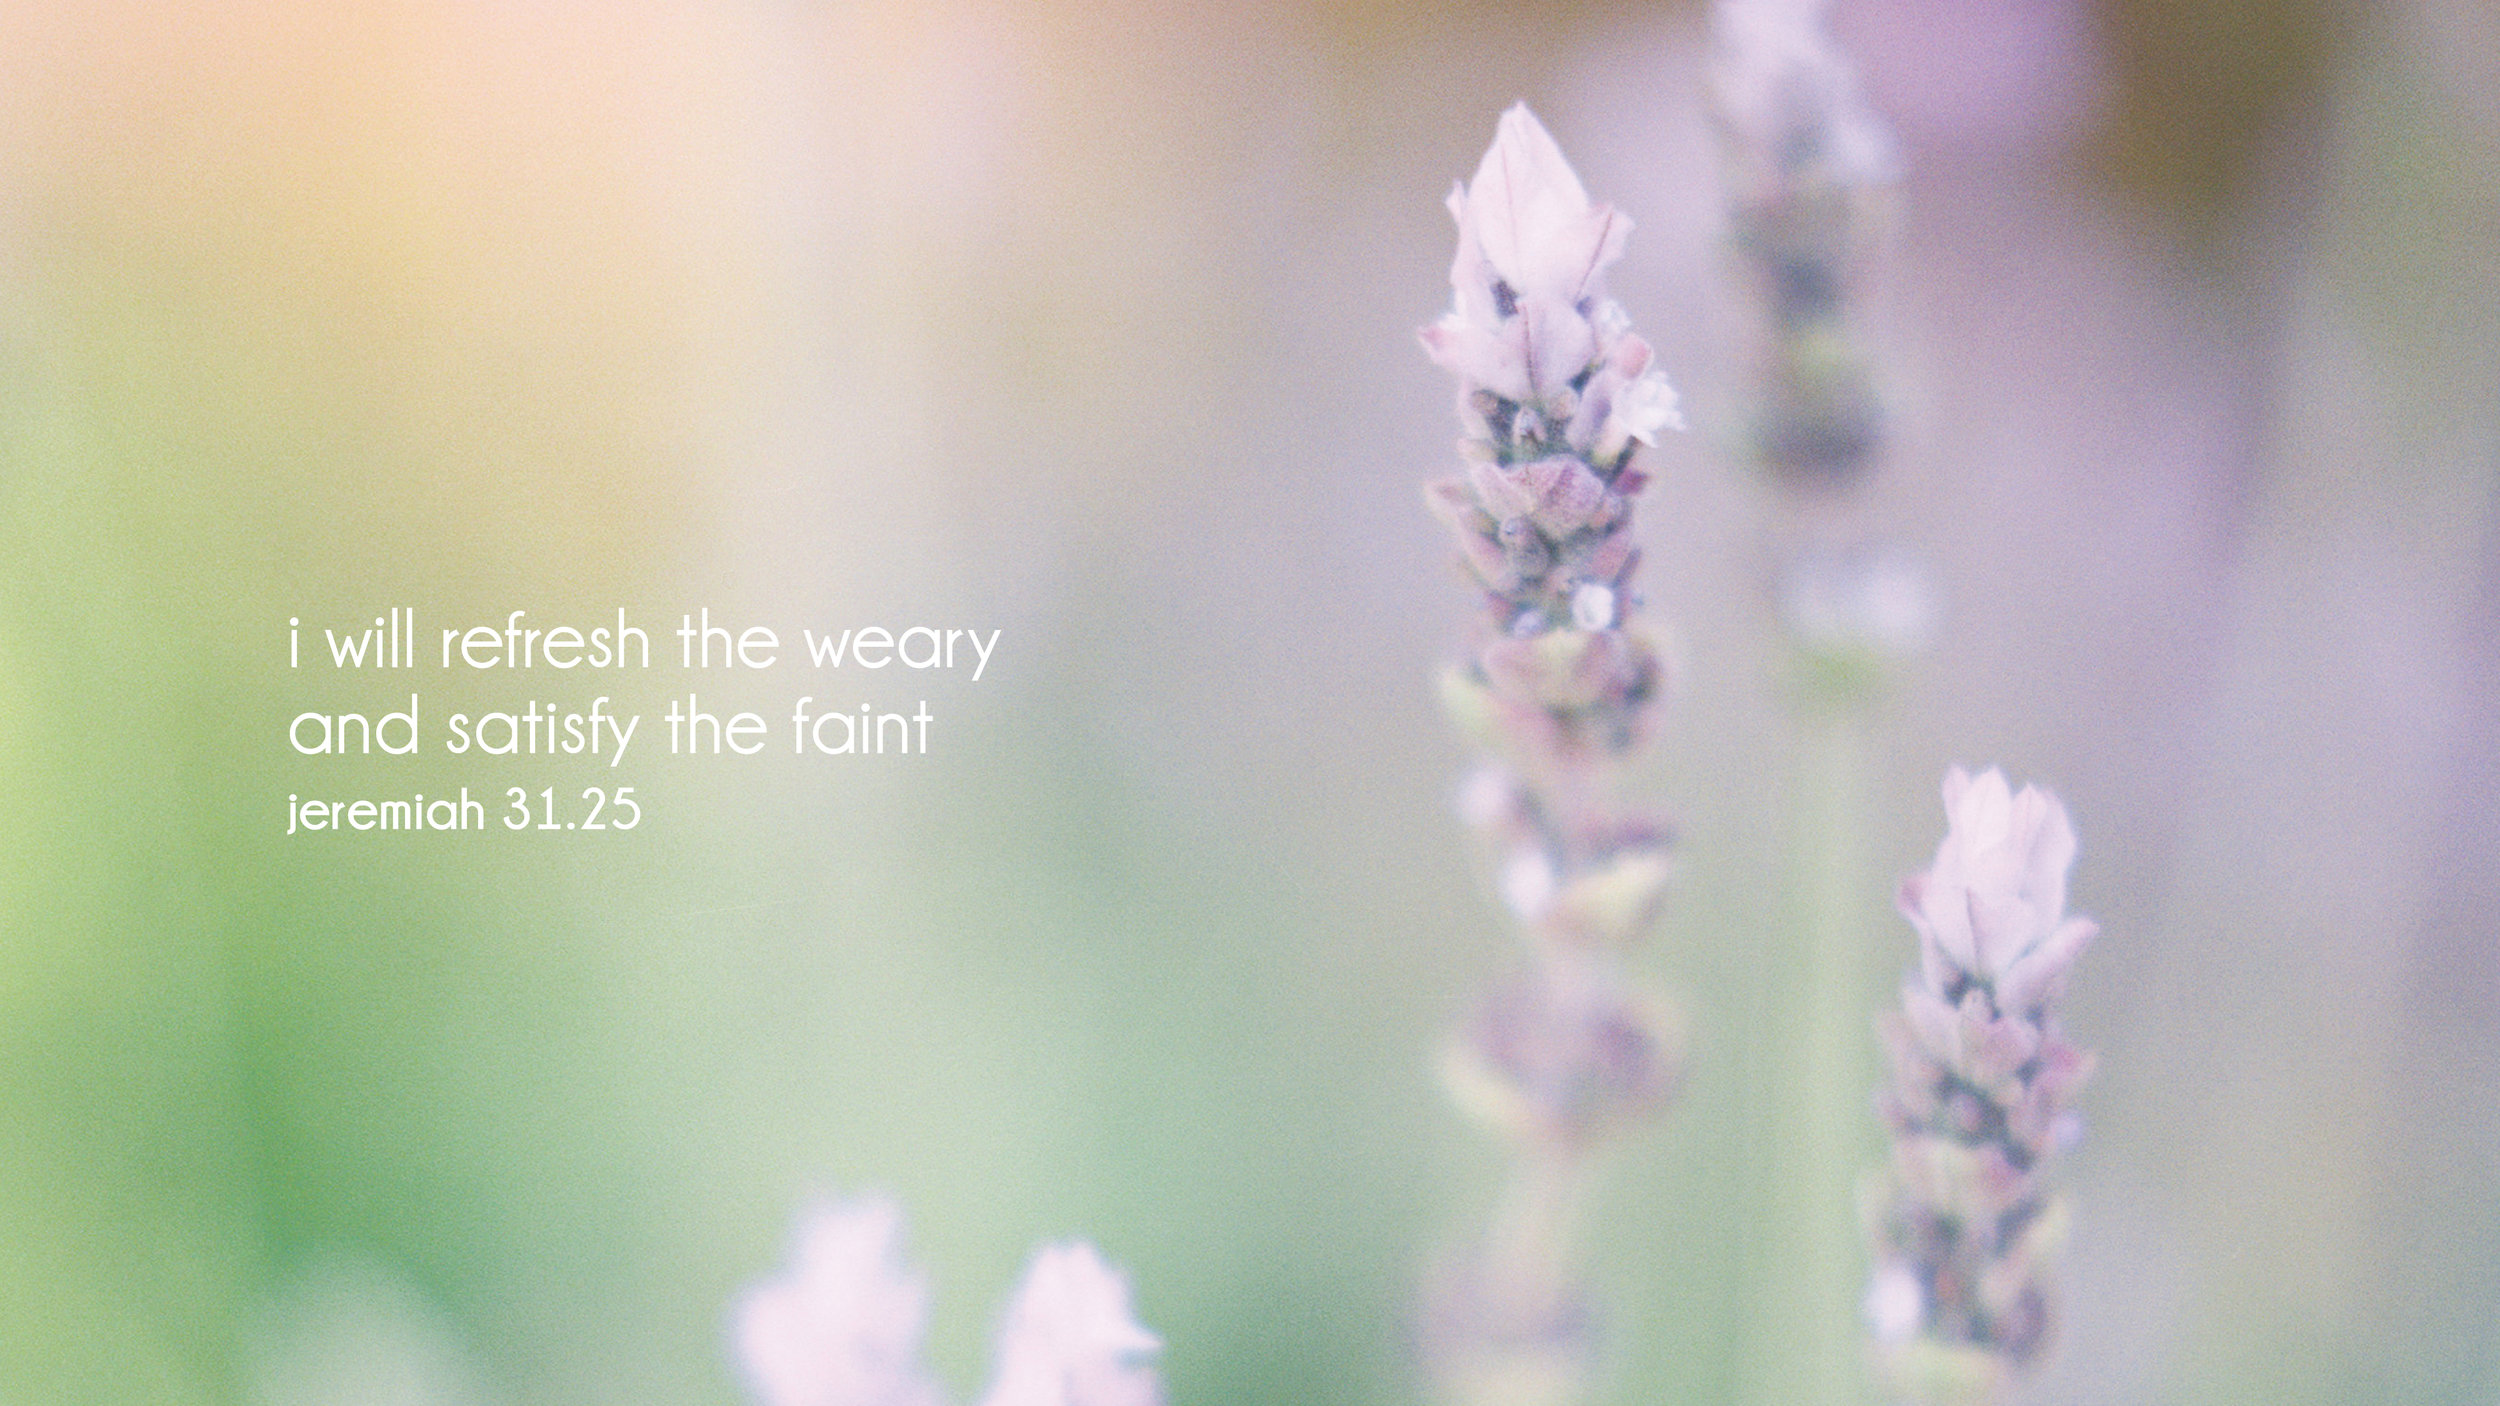 Verse for the weary